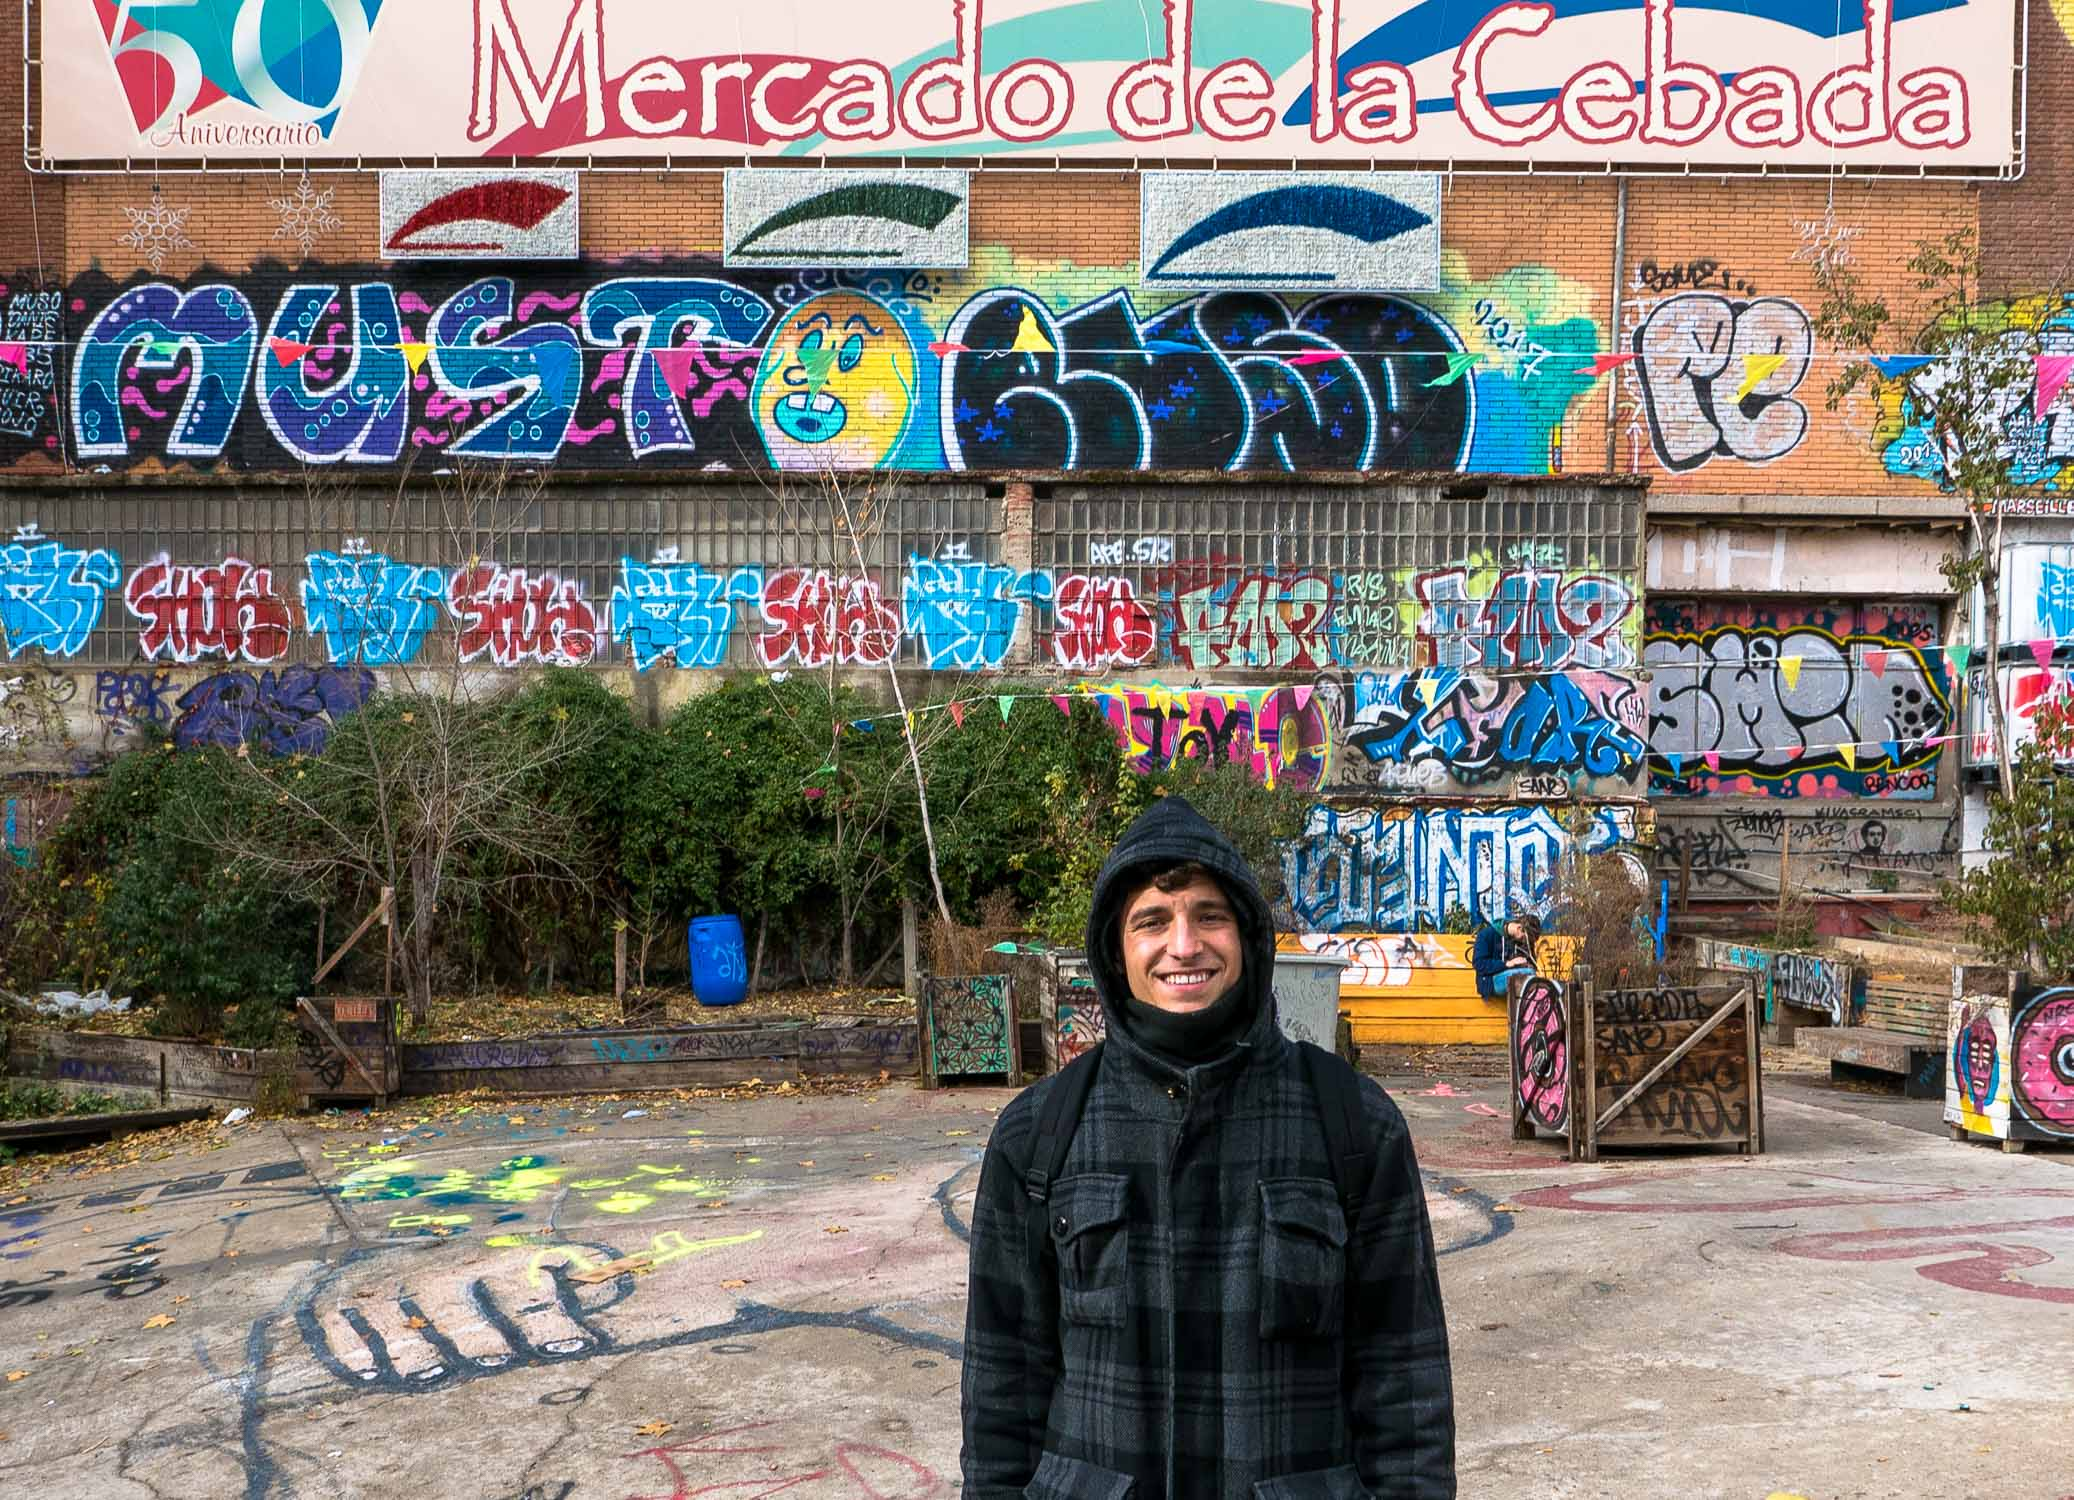 Javier at the Mercado de la Cebada, across the street from our apartment.